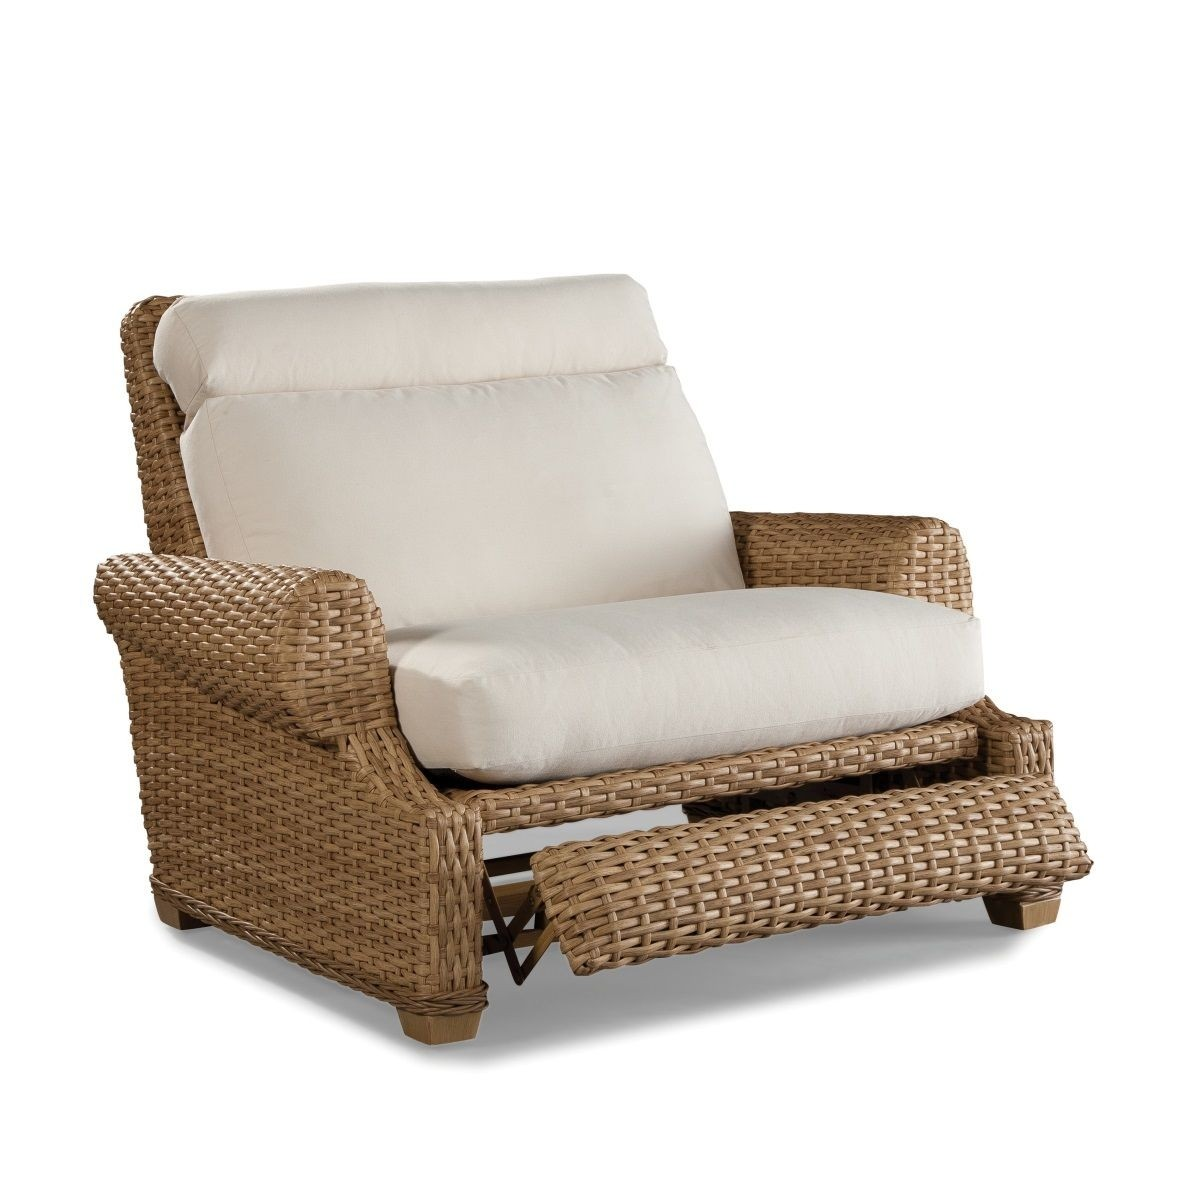 Outdoor Patio Recliners   Foter Most expensive recliner 1